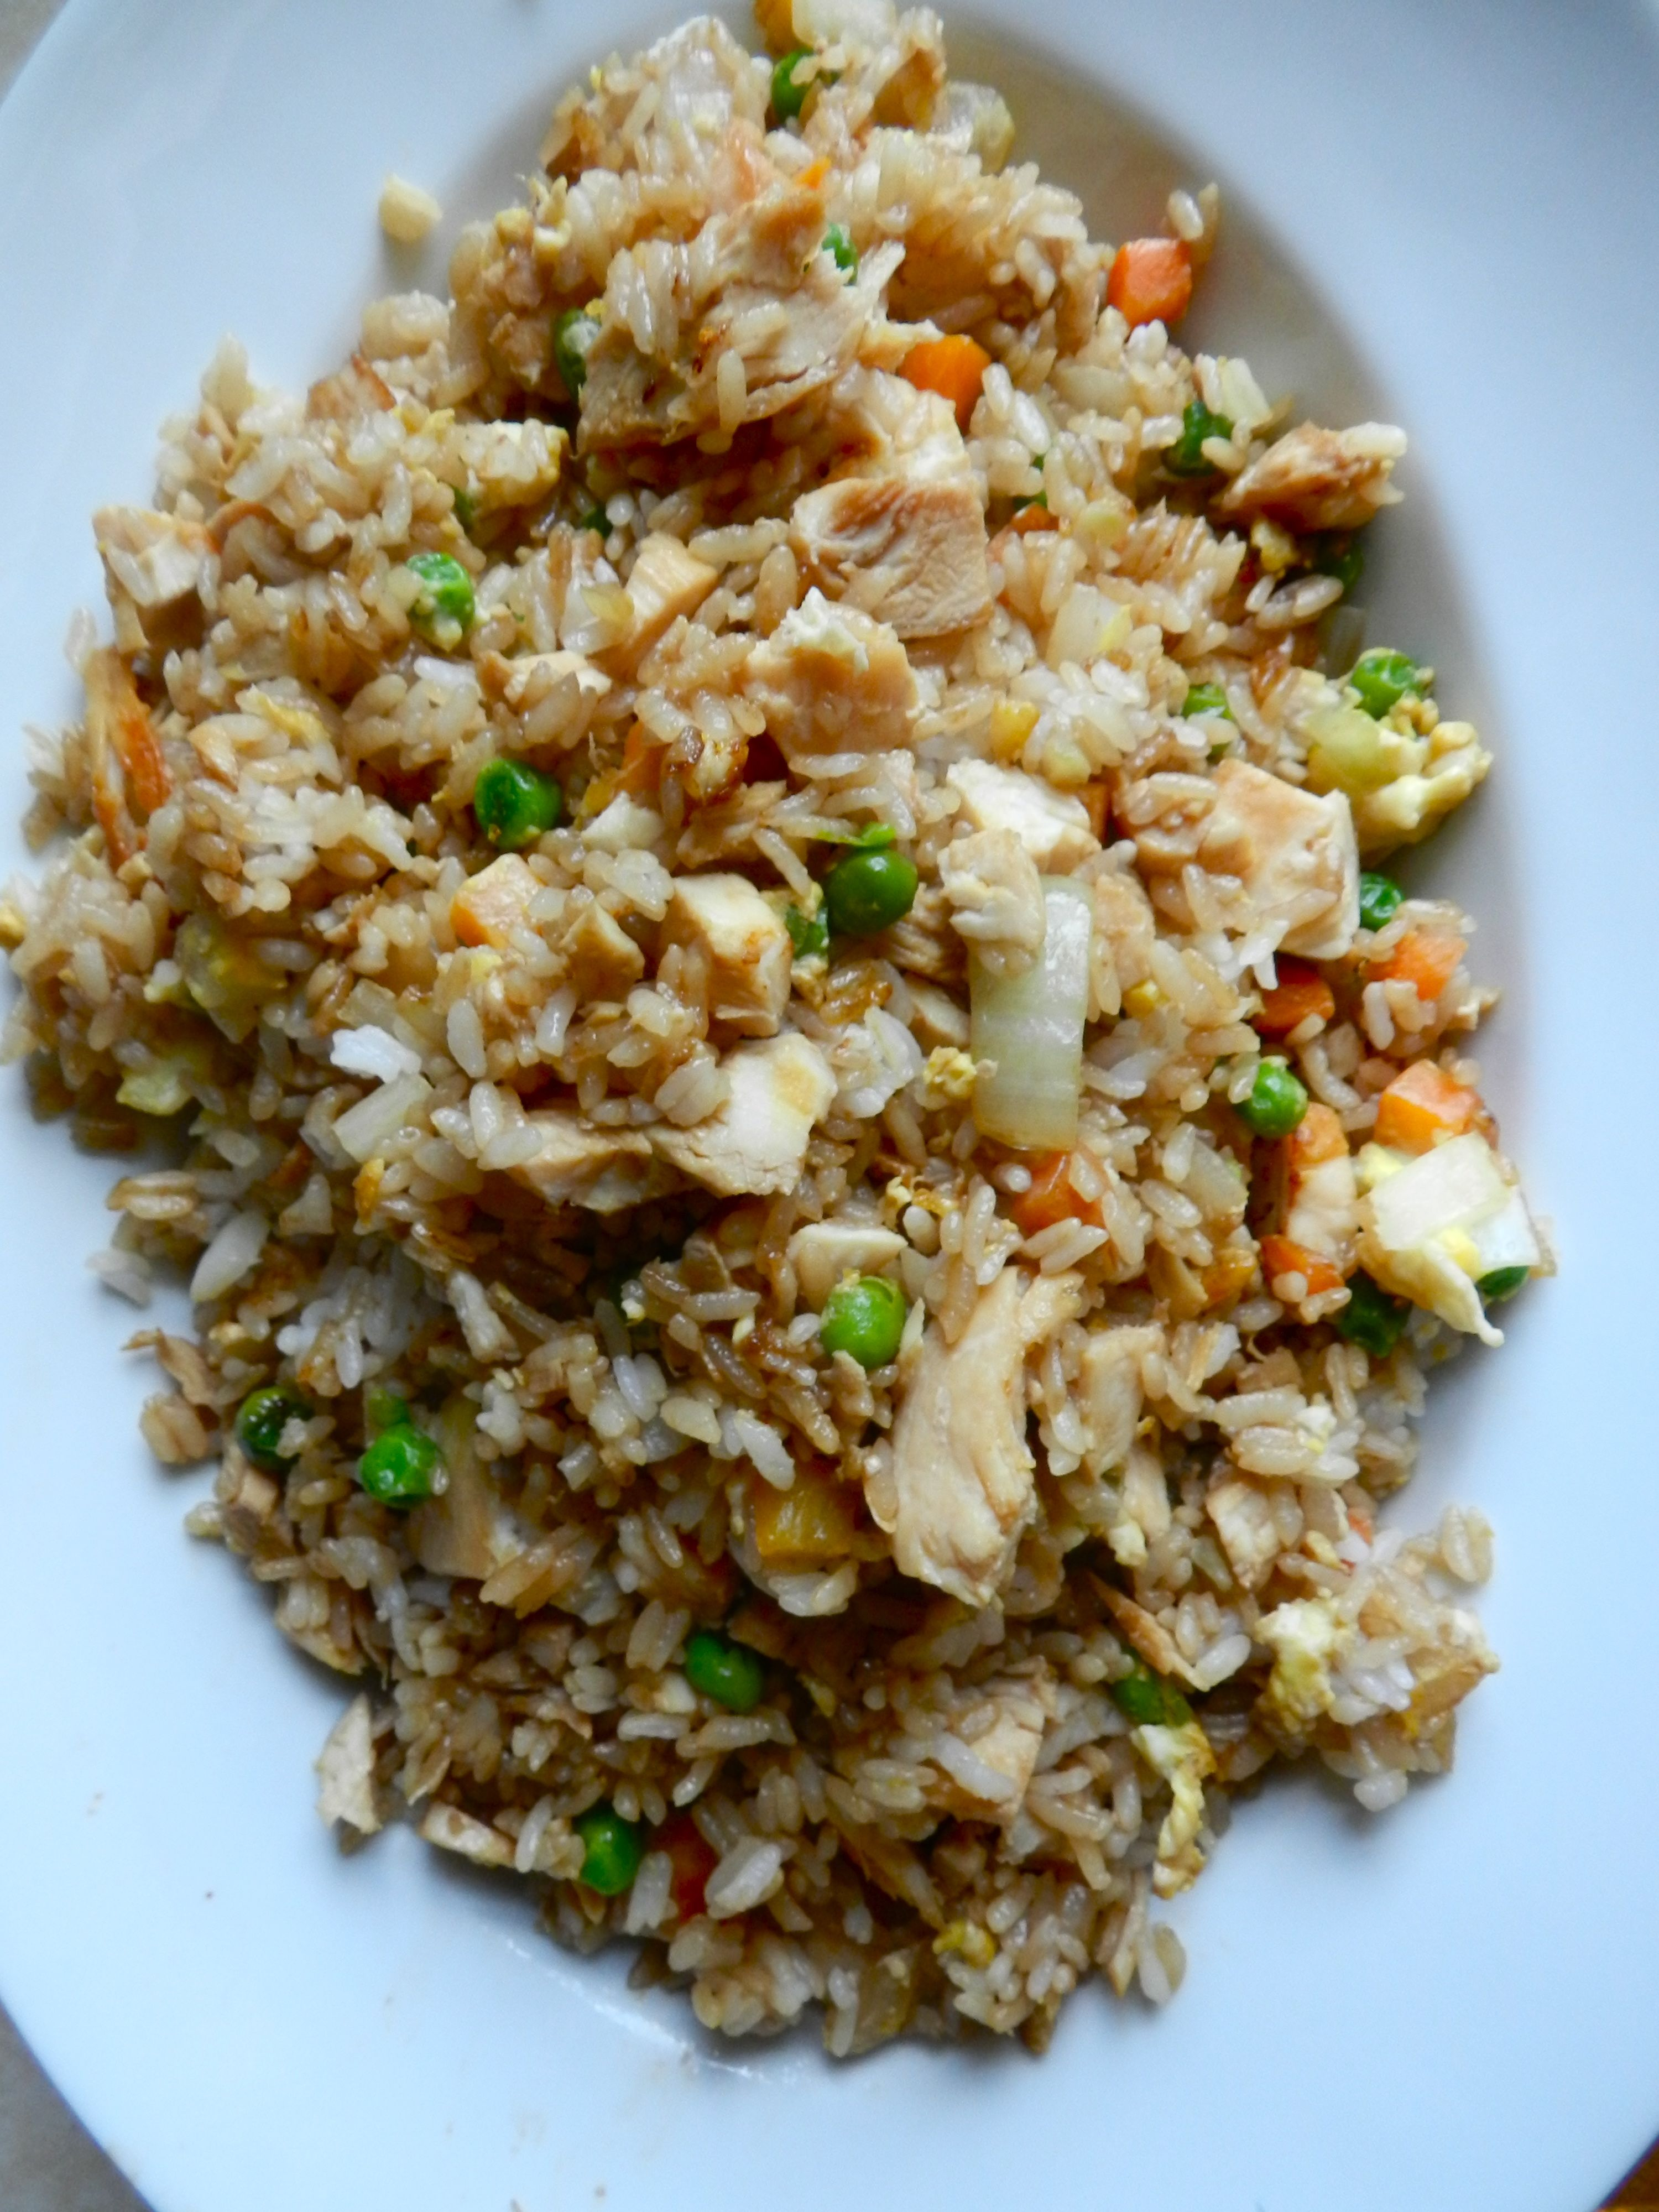 better-than-takeout chicken fried rice. homemade! no yucky msg. and its easy